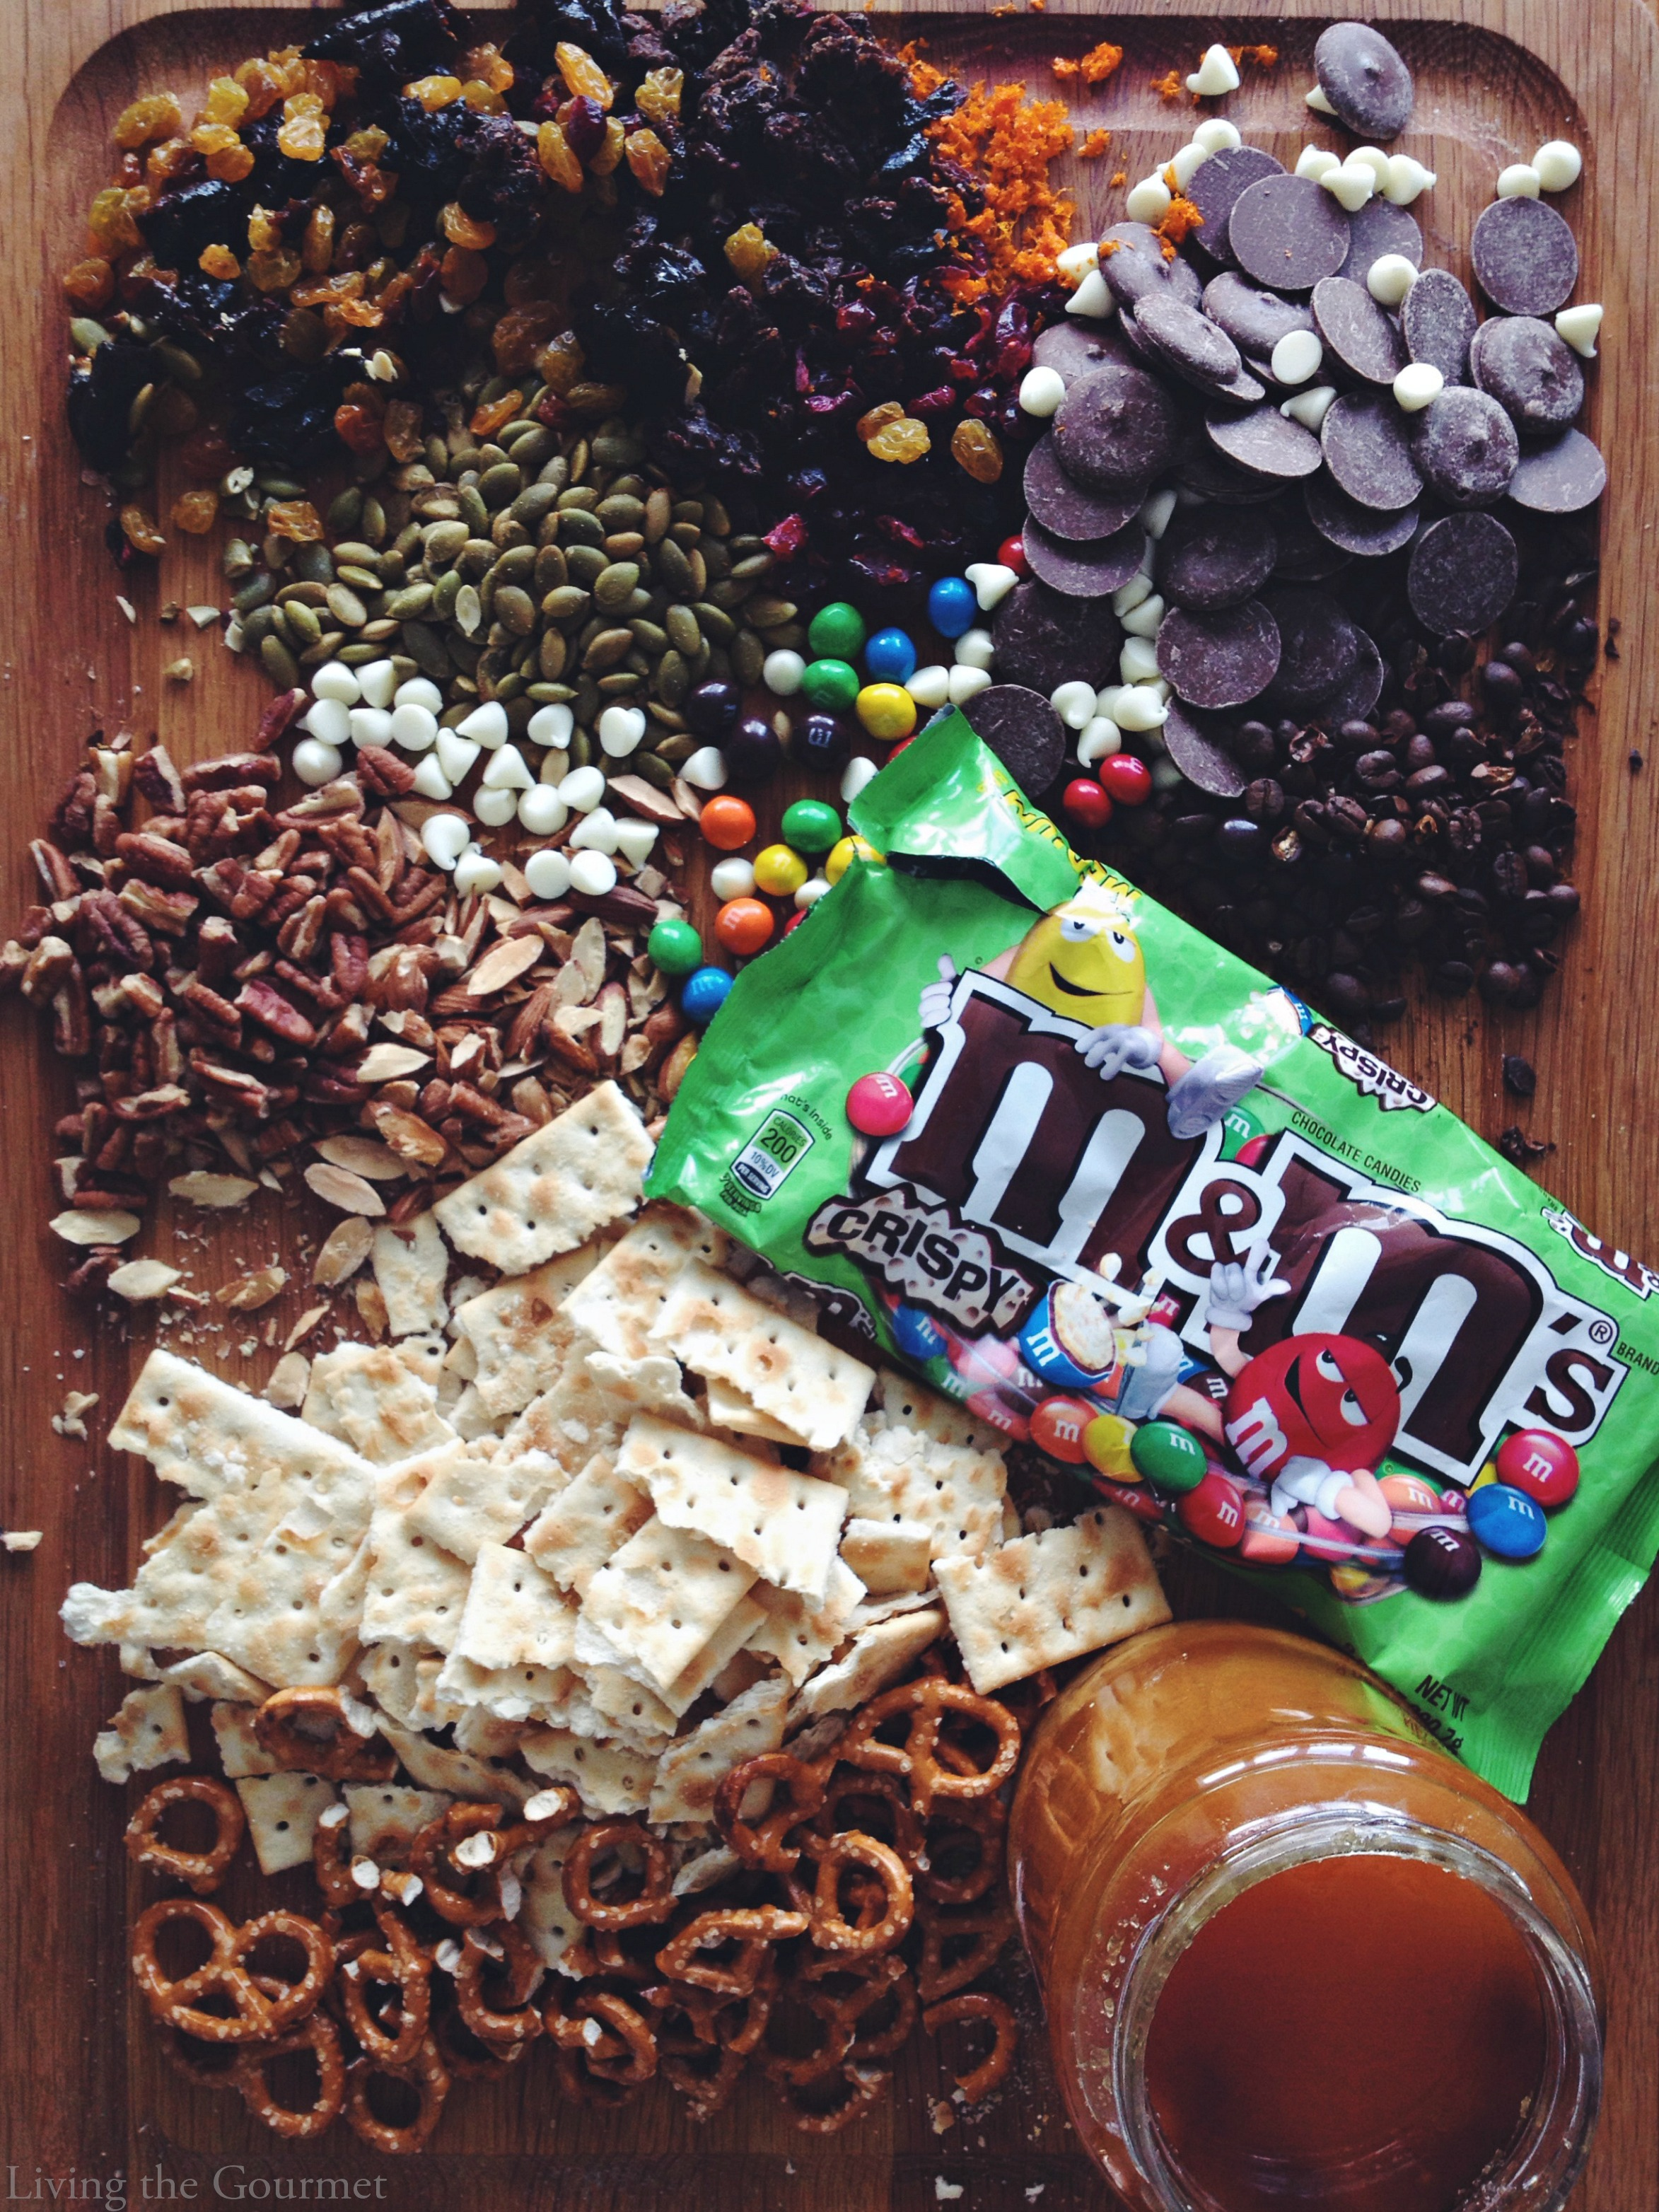 Living the Gourmet: Honey & Chocolate Bark featuring M&M's Cripsy